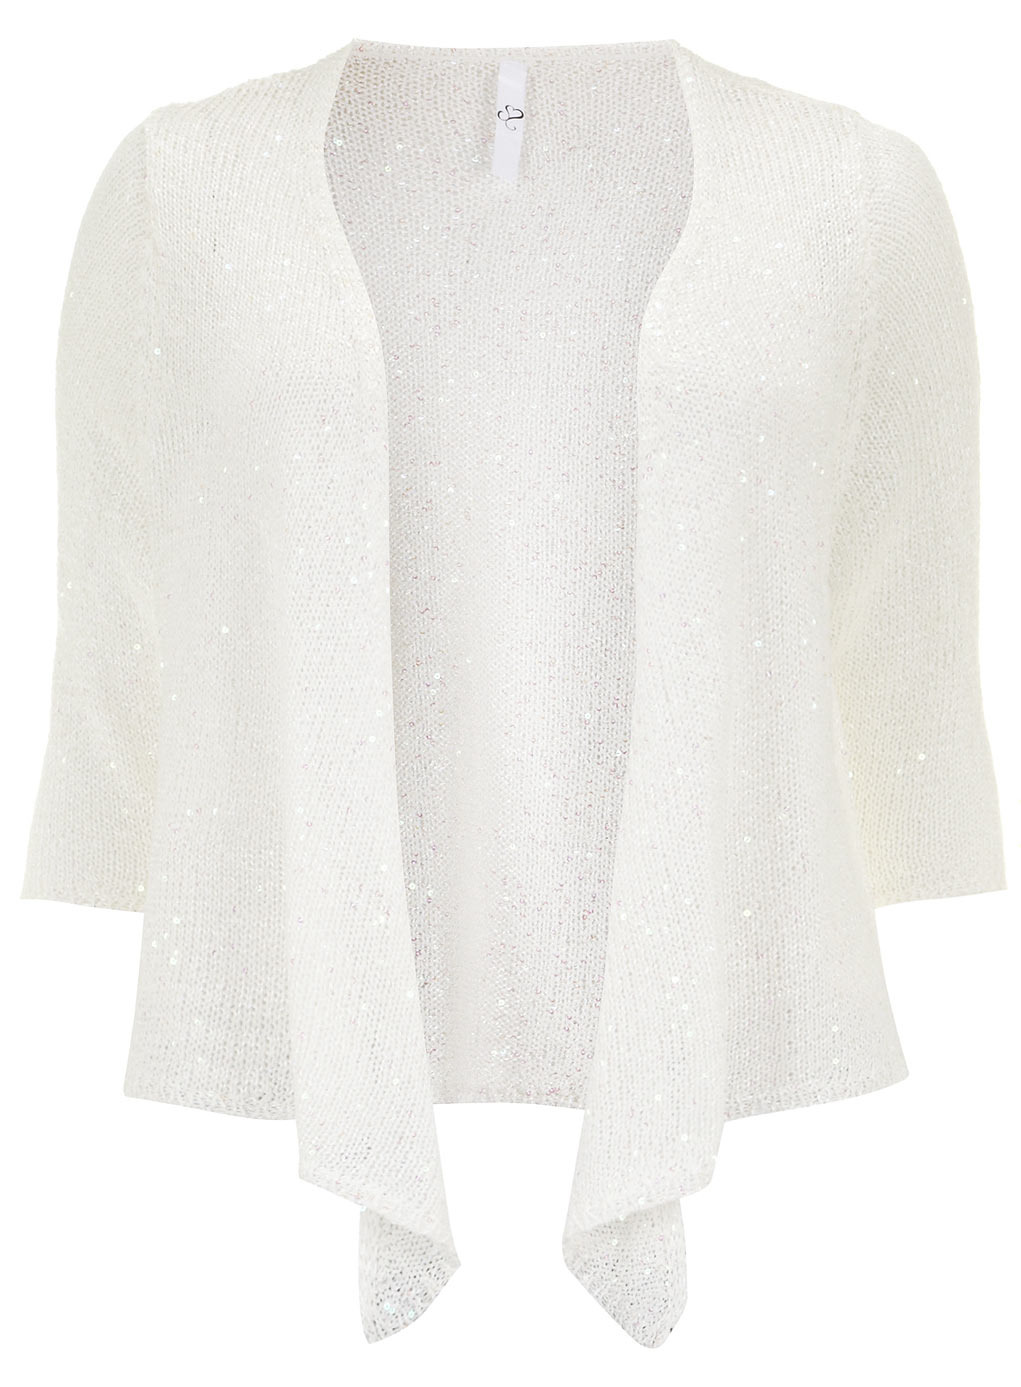 White Sequin Shrug - pattern: plain; length: cropped; neckline: collarless open; style: open front; predominant colour: white; occasions: casual, evening, creative work; fibres: polyester/polyamide - mix; fit: standard fit; sleeve length: 3/4 length; sleeve style: standard; texture group: knits/crochet; pattern type: knitted - other; embellishment: sequins; season: s/s 2014; wardrobe: highlight; embellishment location: all over